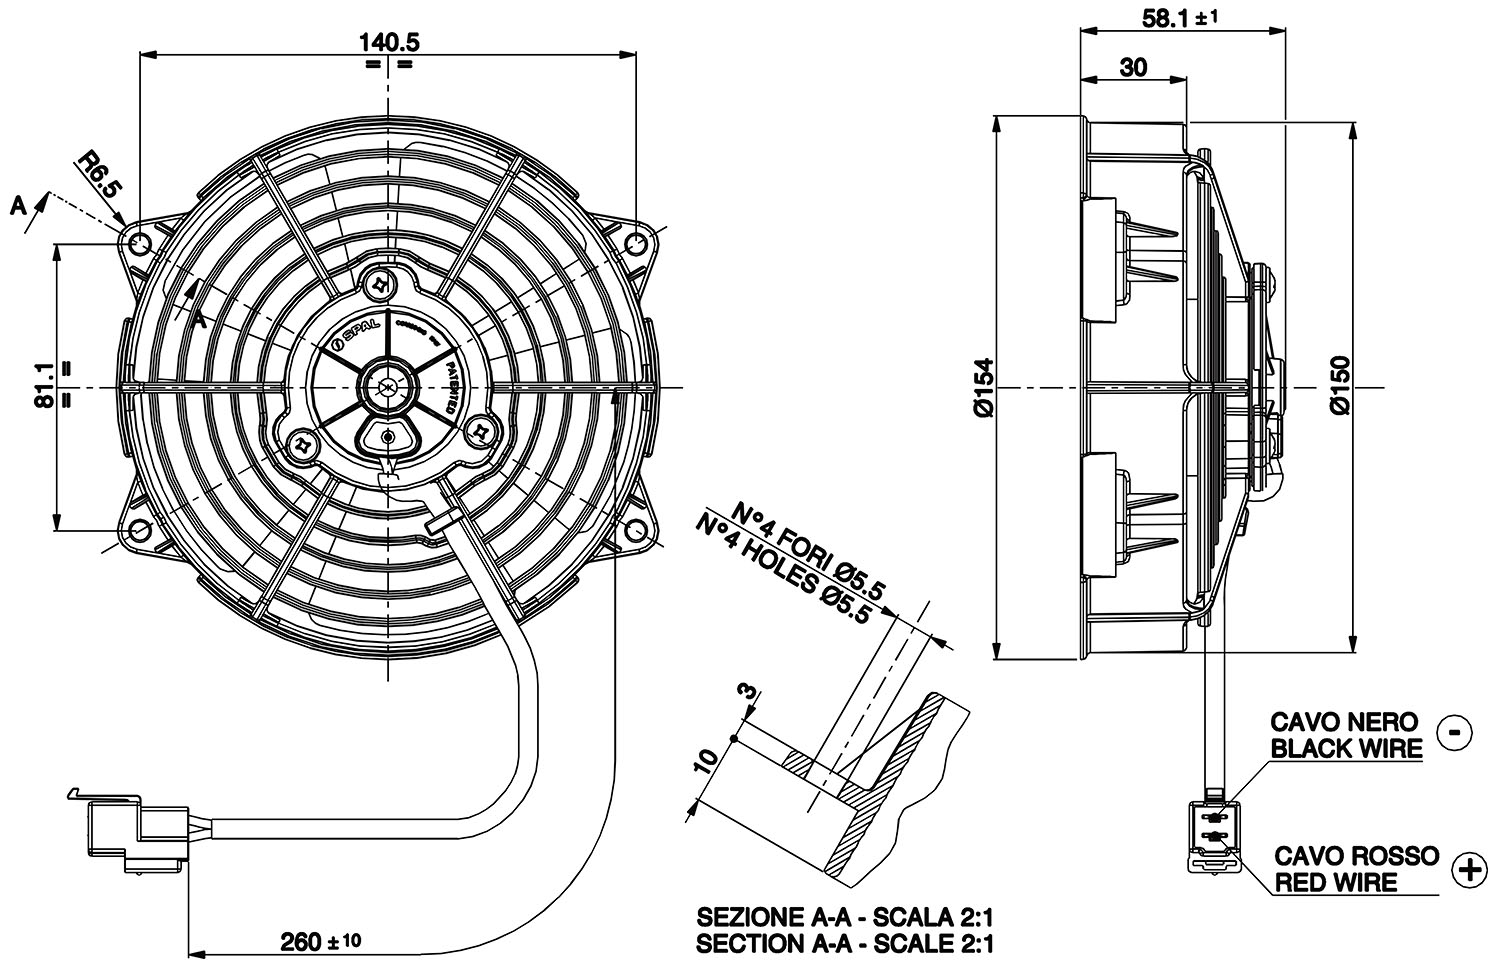 dometic thermostat wiring diagram dolgular jpg